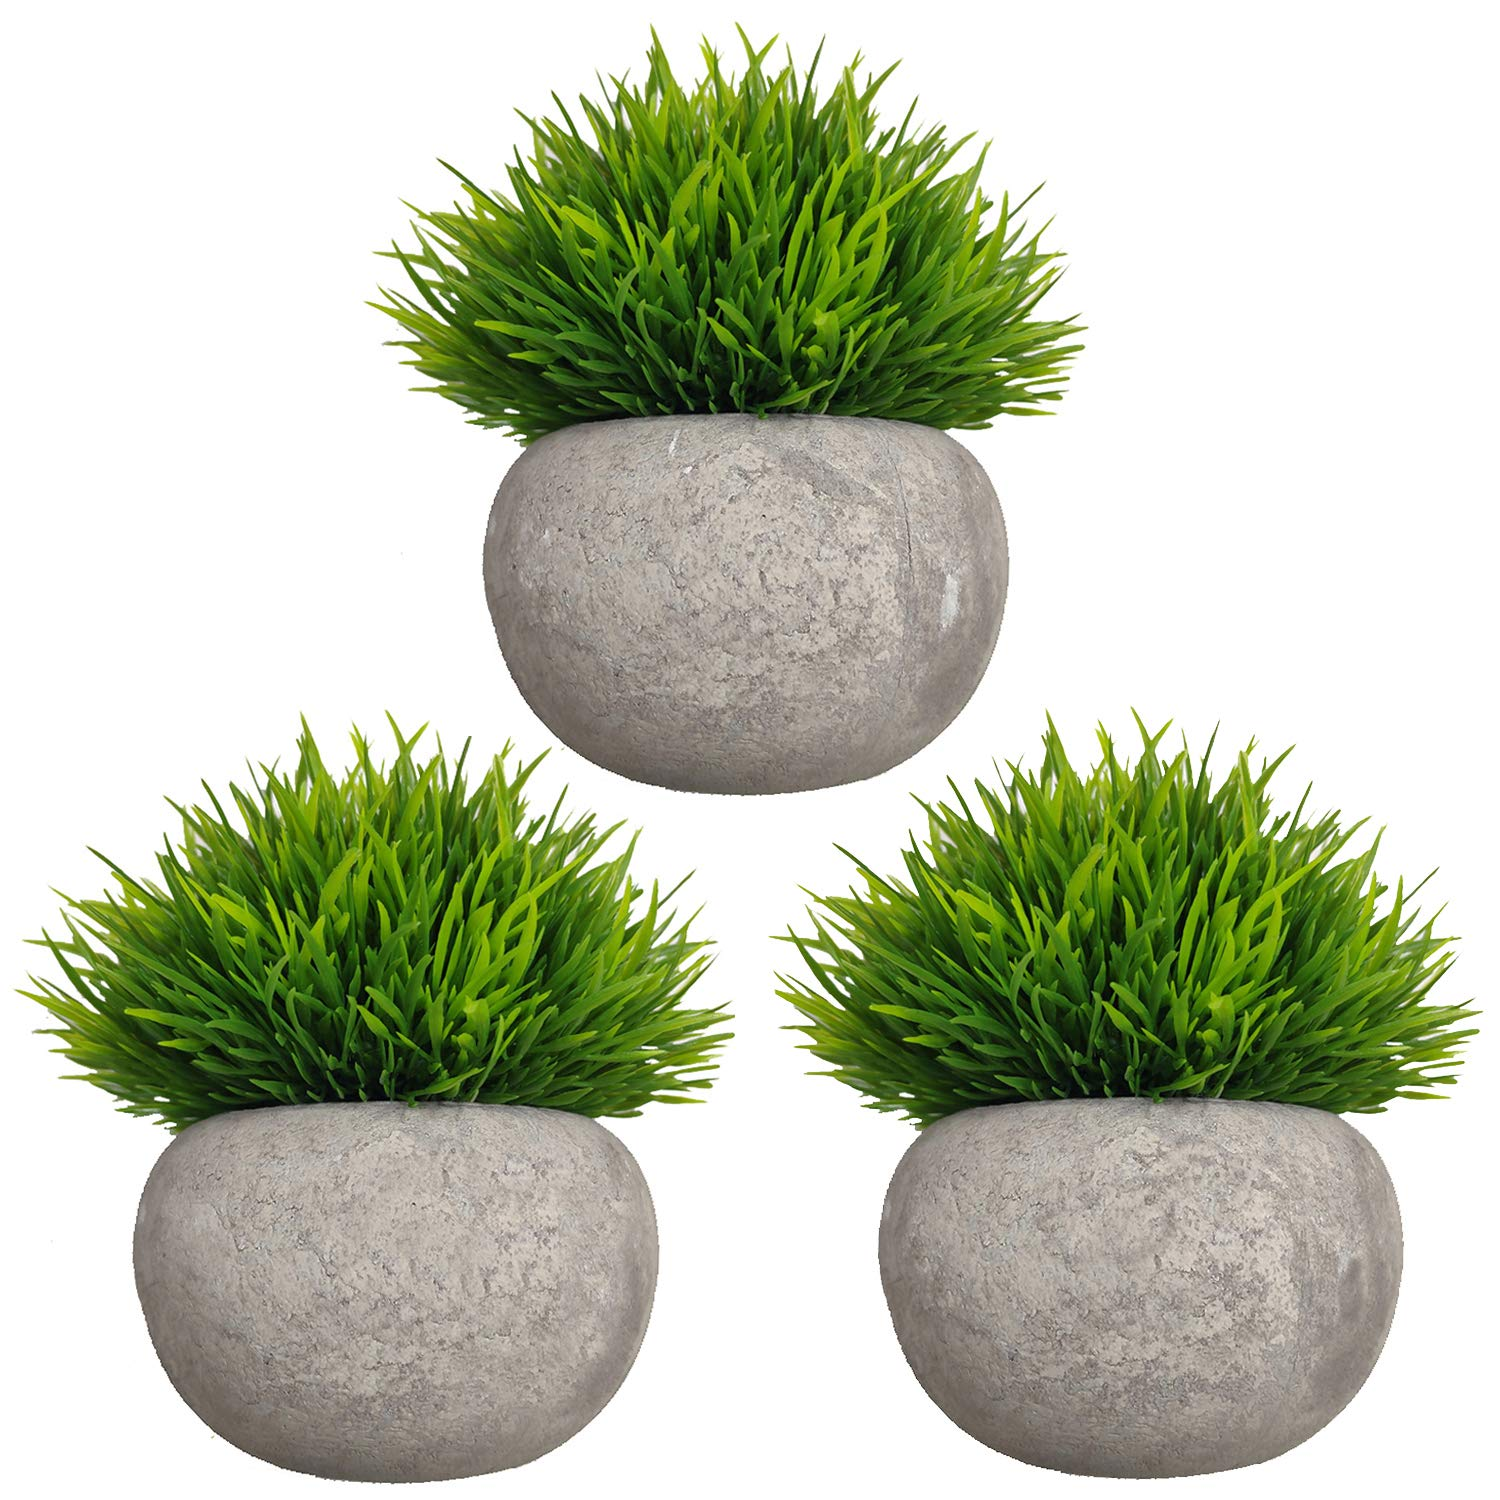 MIXCUTE Mini Artificial Plants 3 Pack Fake Plants Potted Faux Grass Topiary Shrubs with Pots for House, Farmhouse, Bathroom, Office, Home Decor